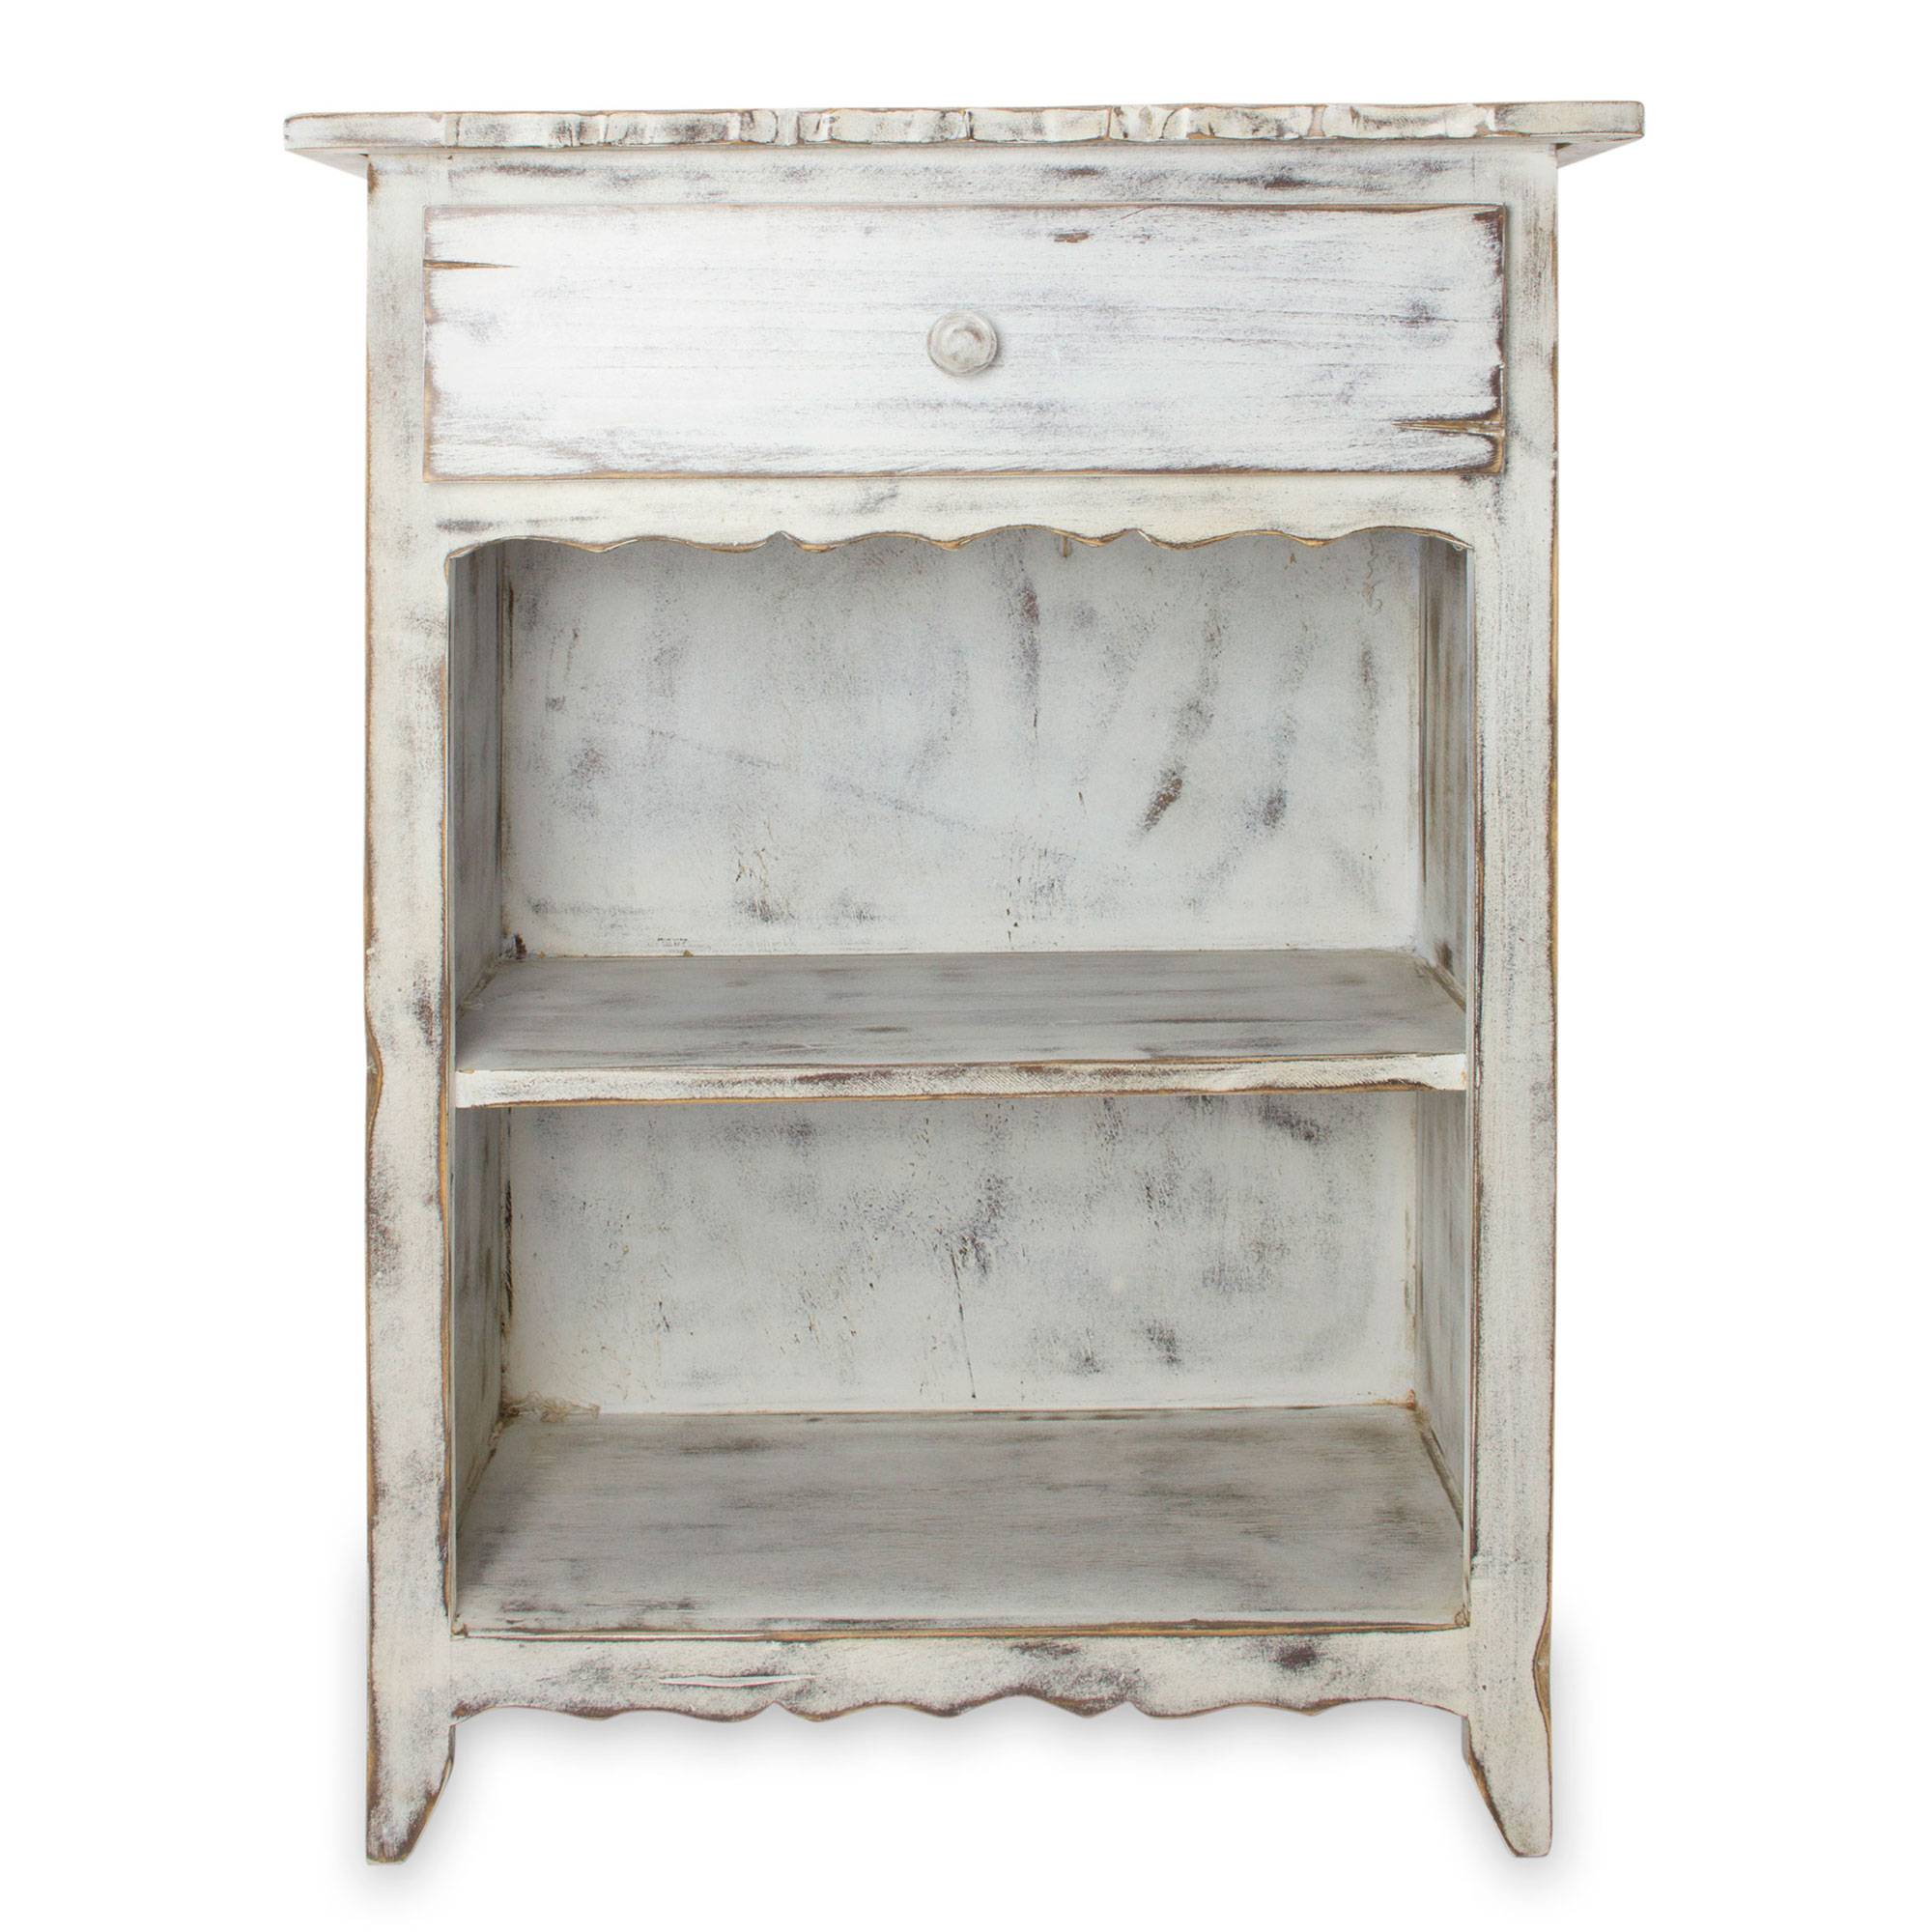 Rustic White Wood Side Table with Drawer and Shelves Tacambaro